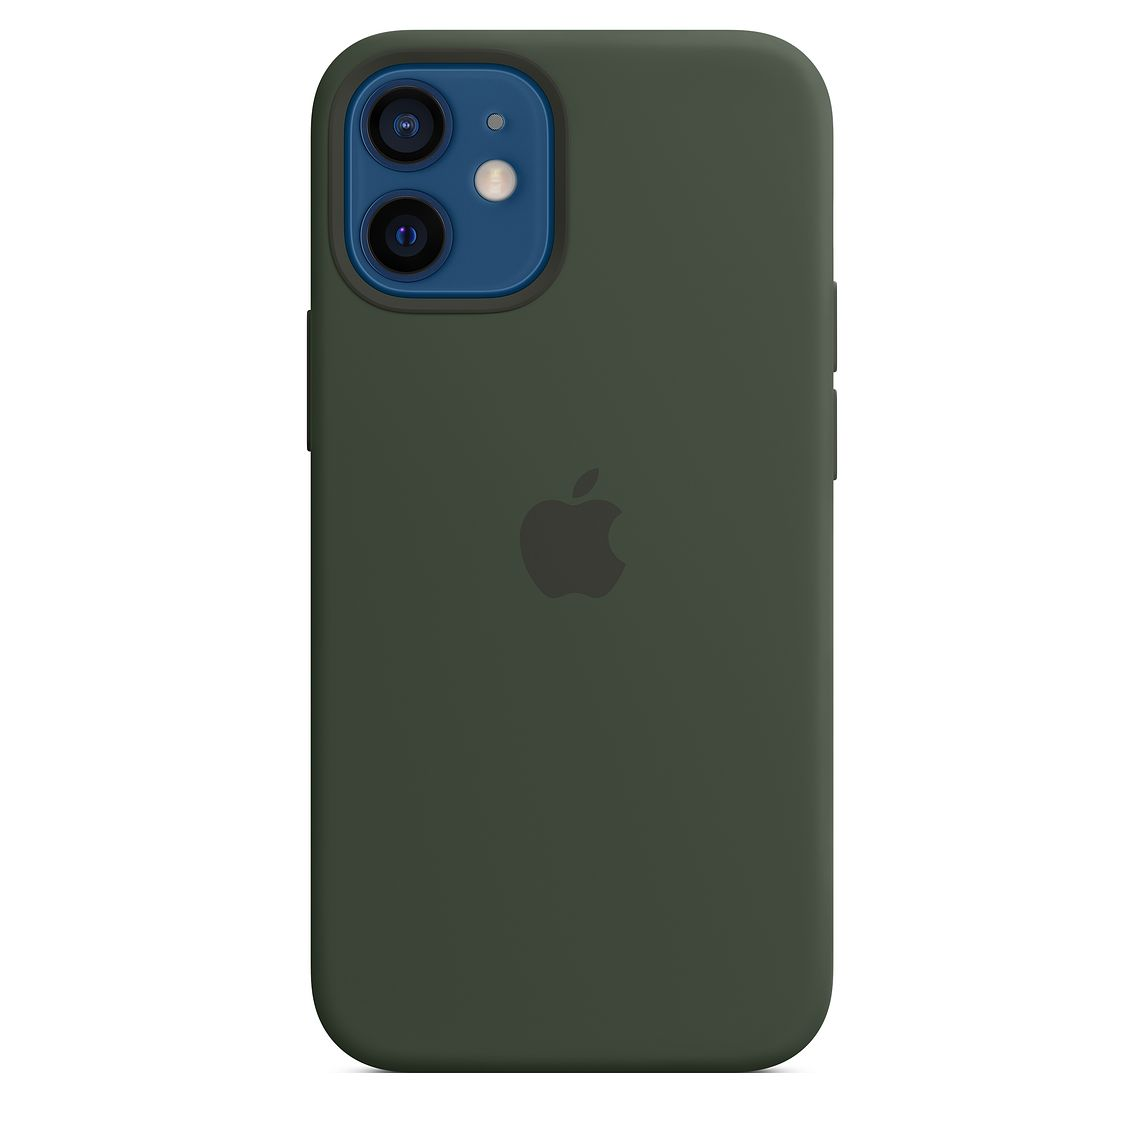 Apple iPhone 12 mini Silicone Case with MagSafe Cypress Green